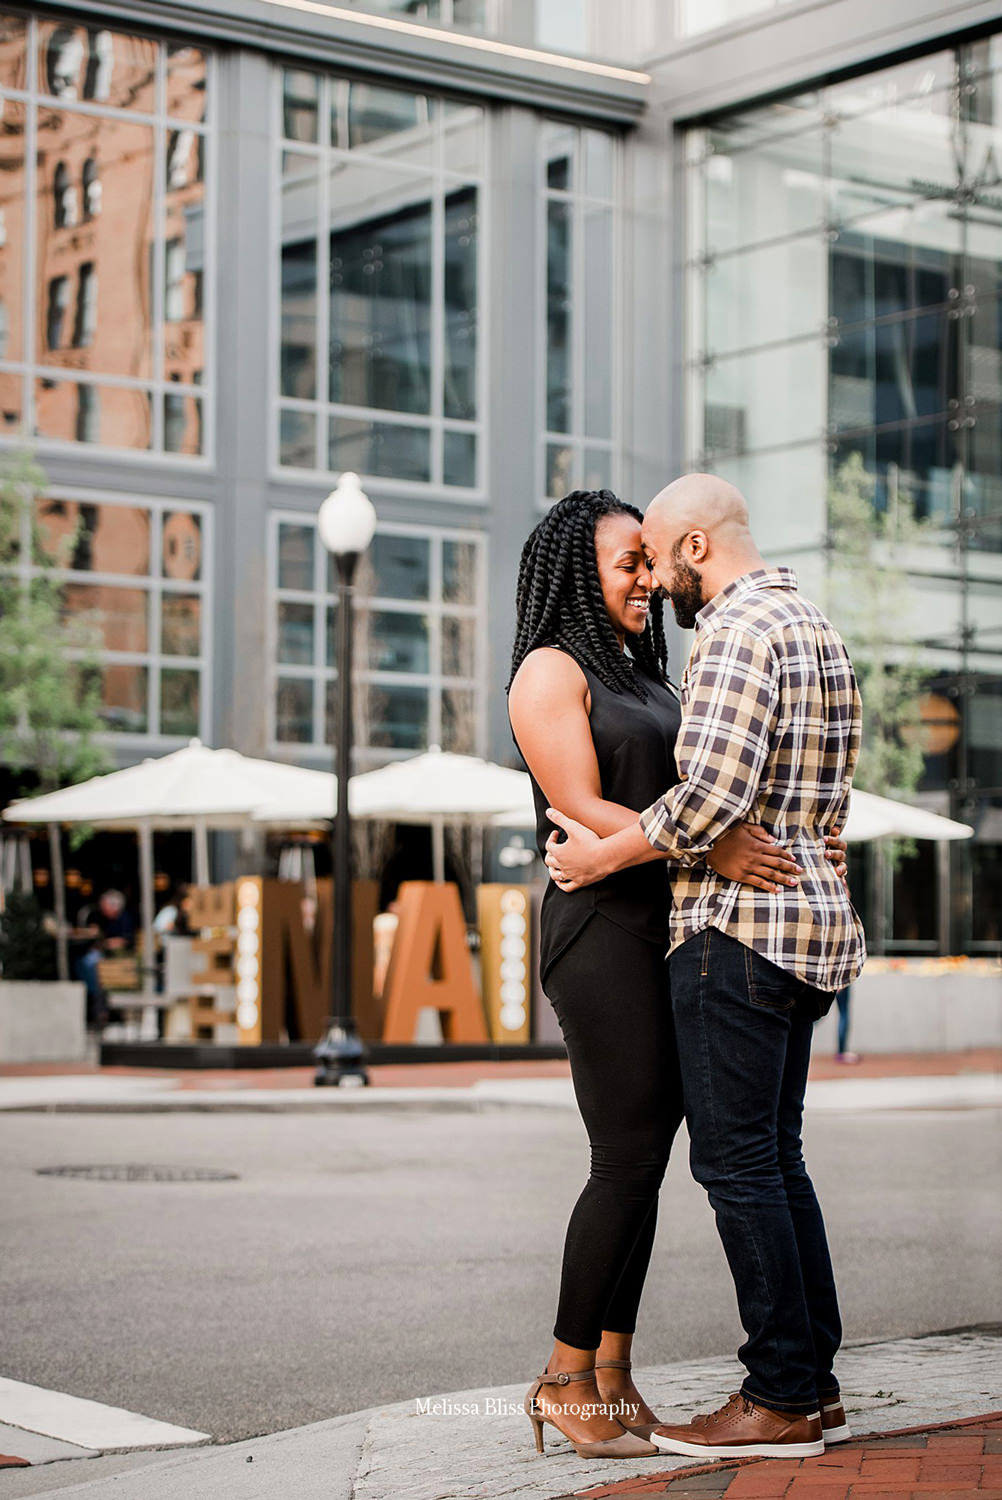 engaged-couple-downtown-norfolk-main-street-melissa-bliss-photography.jpg